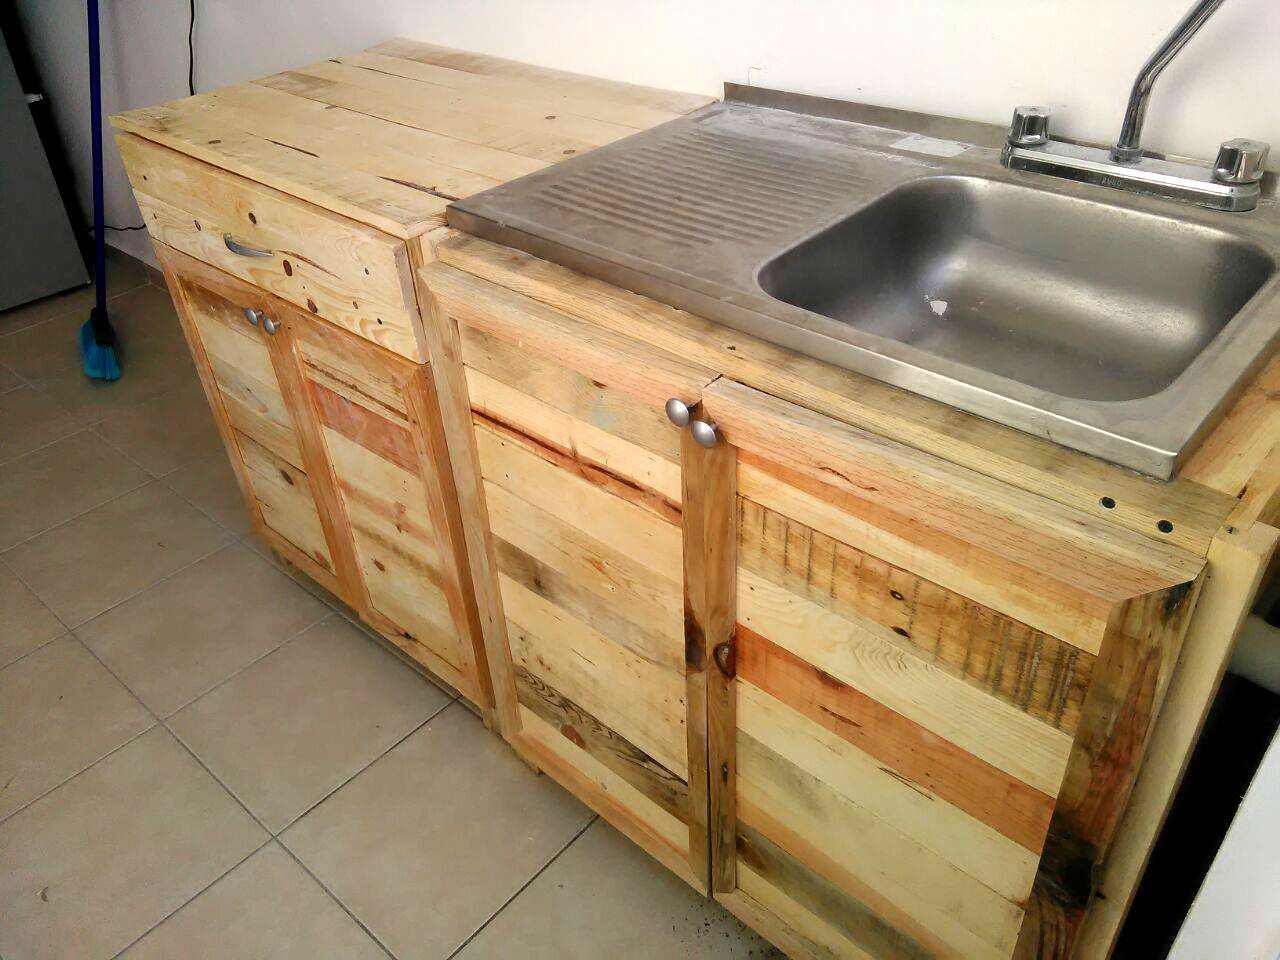 Amazing Pallet Kitchen Projects Recycled Kitchen Kitchen Sink Diy Pallet Kitchen